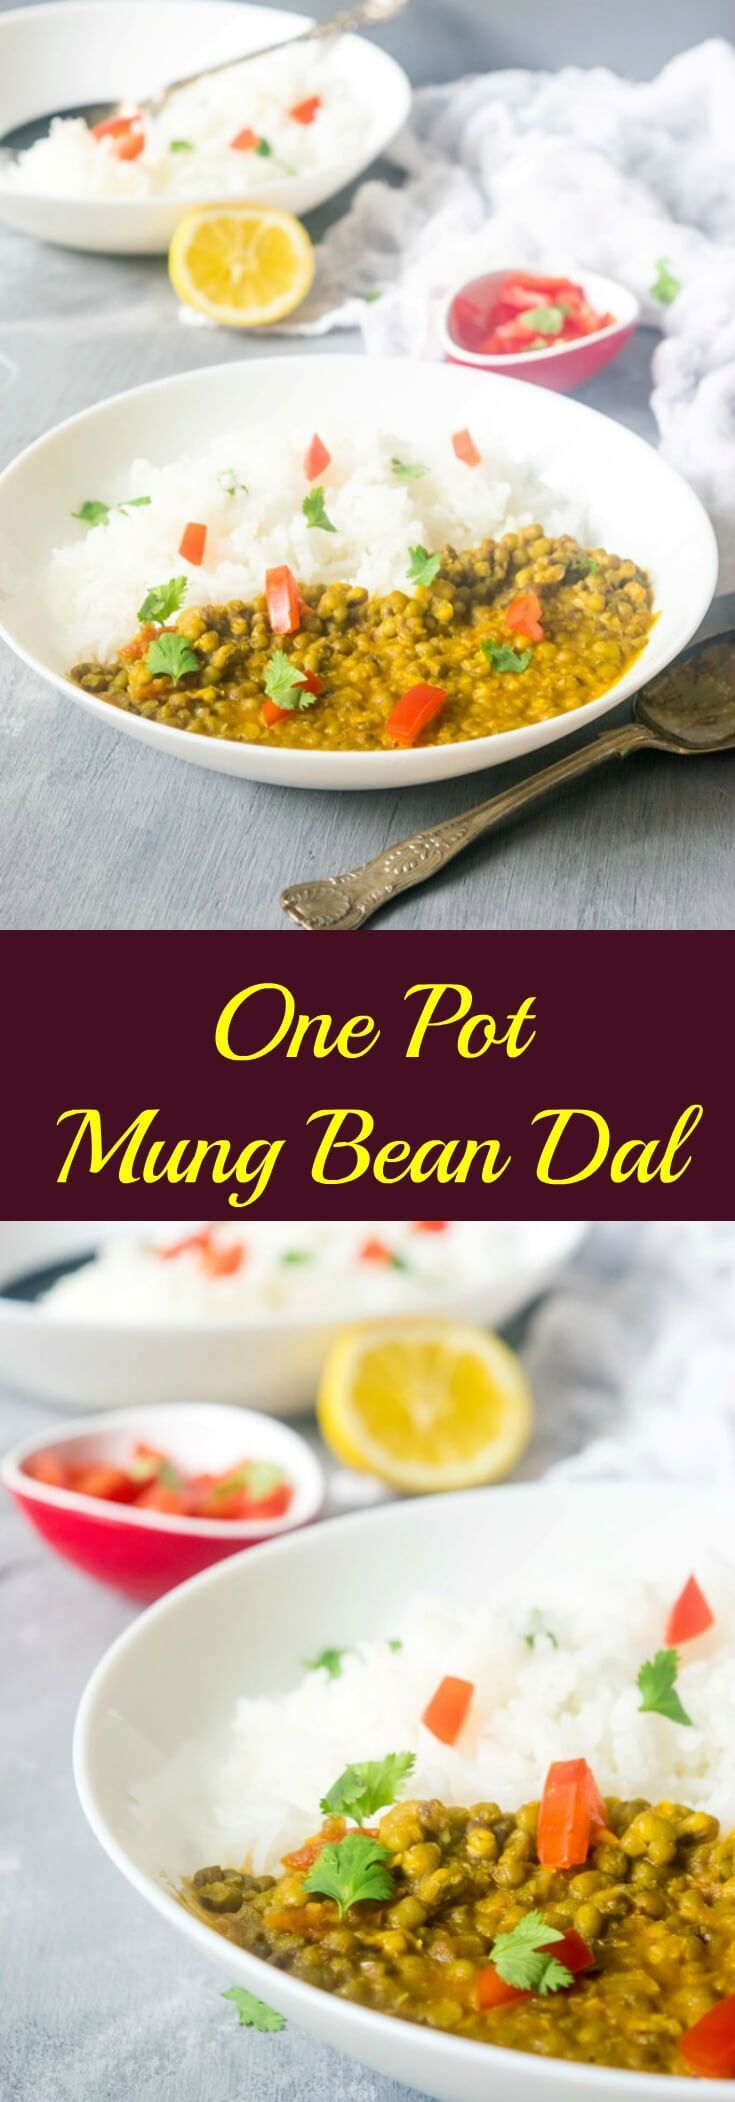 Easy one pot mung bean dal recipe that makes for a really delicious, comforting and healthy meal! This dal requires only a few basic ingredients and spices you might already have in your pantry. | thelastcookie.ca